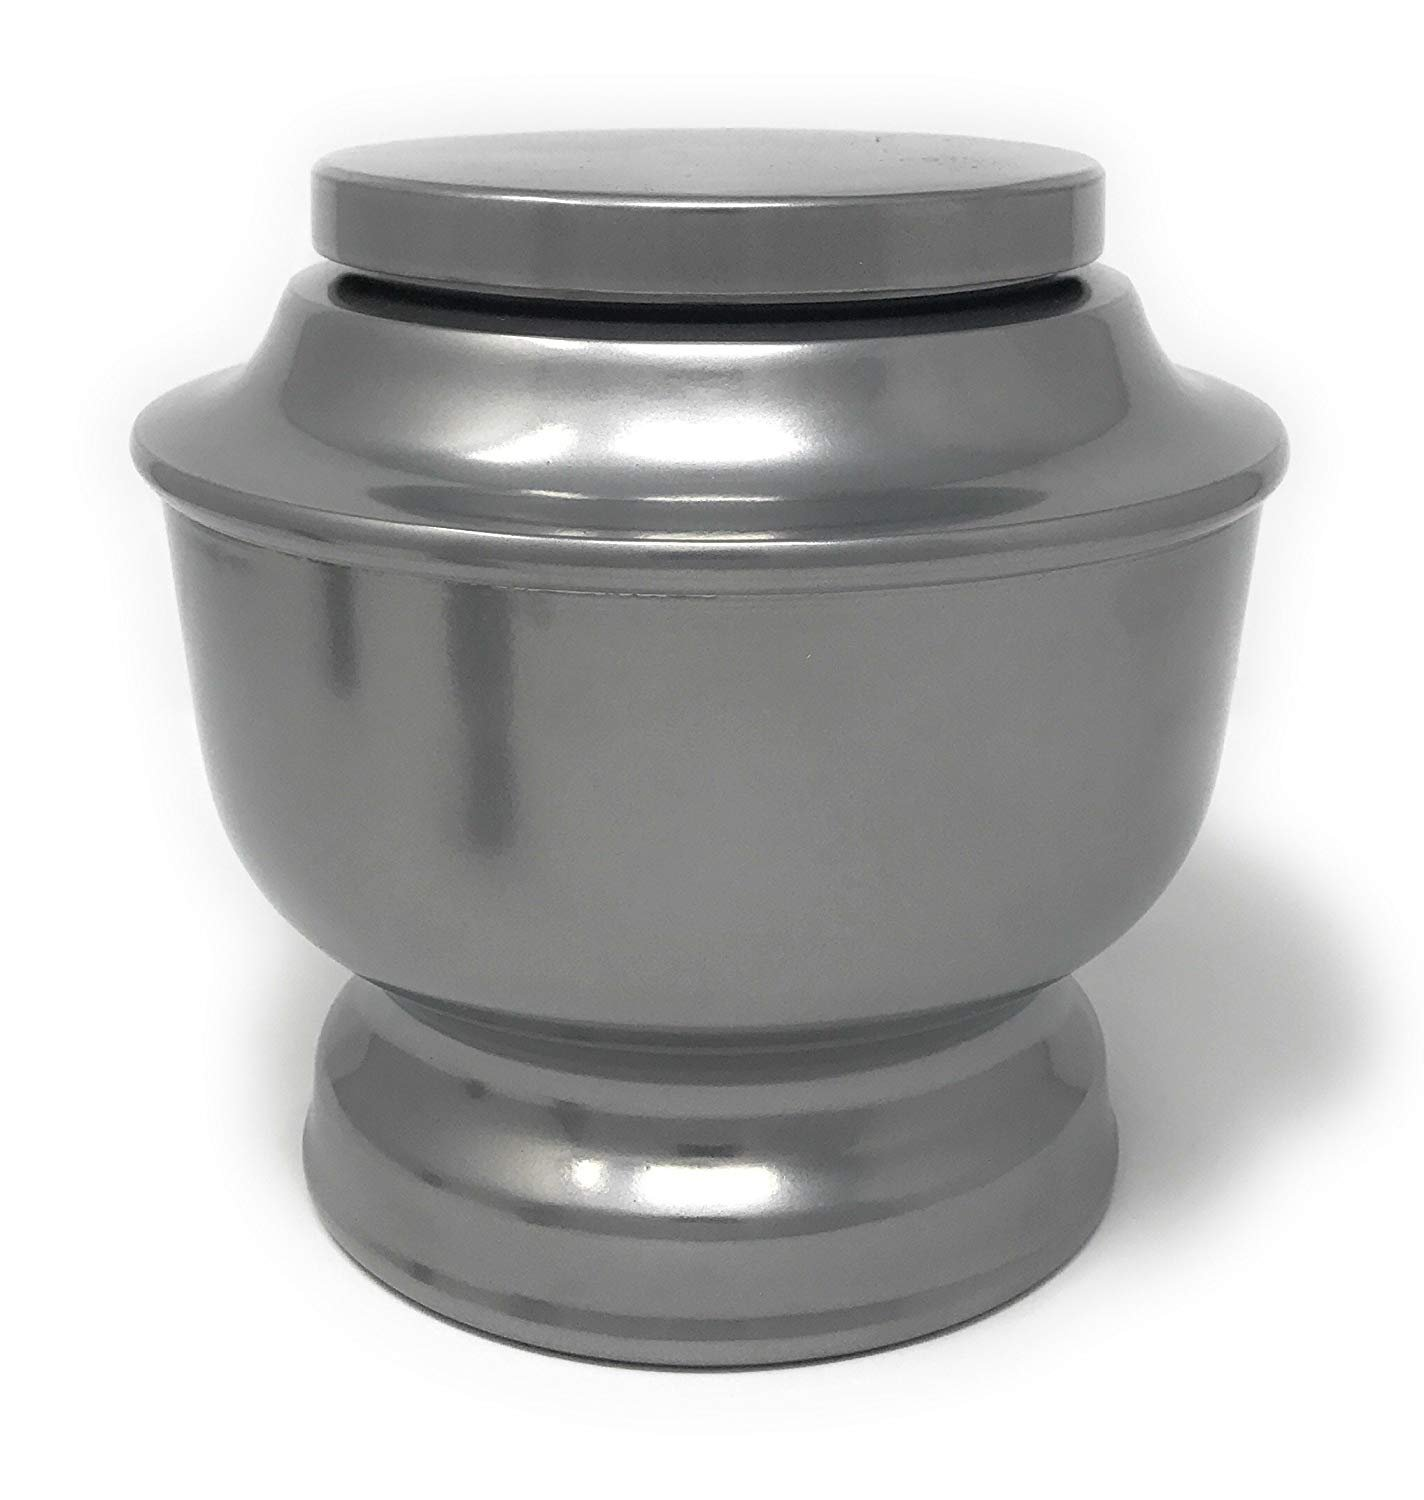 SmartChoice Classic Funeral Cremation Urn for Human Ashes a Variety of Colors Available Adult Urn with Velvet Bag (Silver)